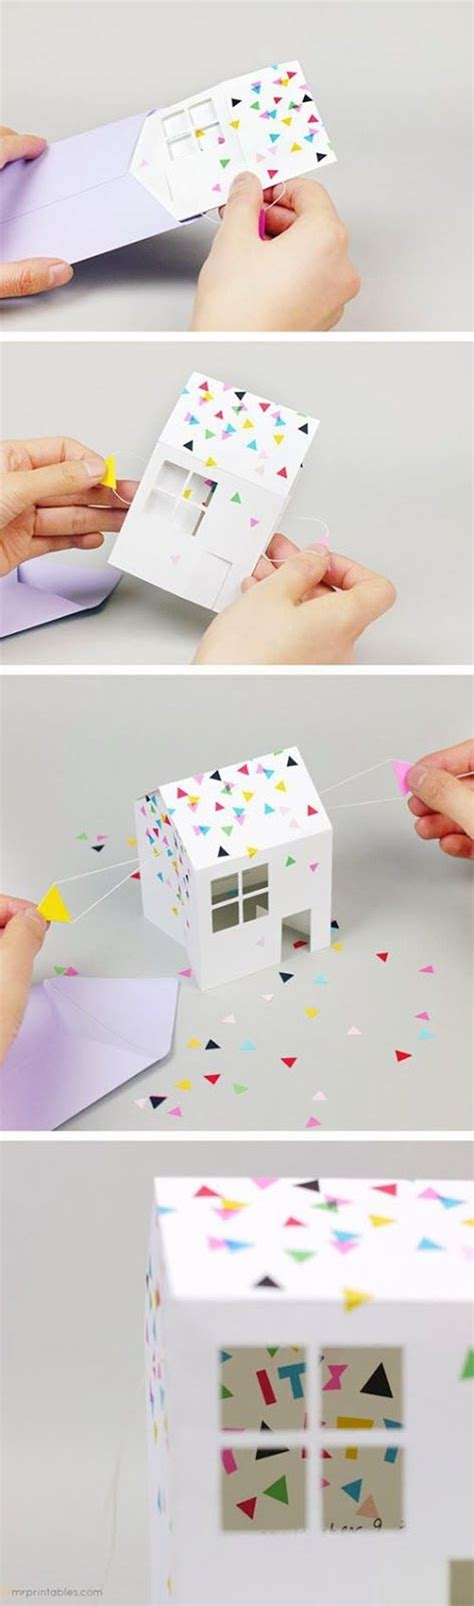 Paper Crafting Ideas - creative paper craft ideas 30 picked